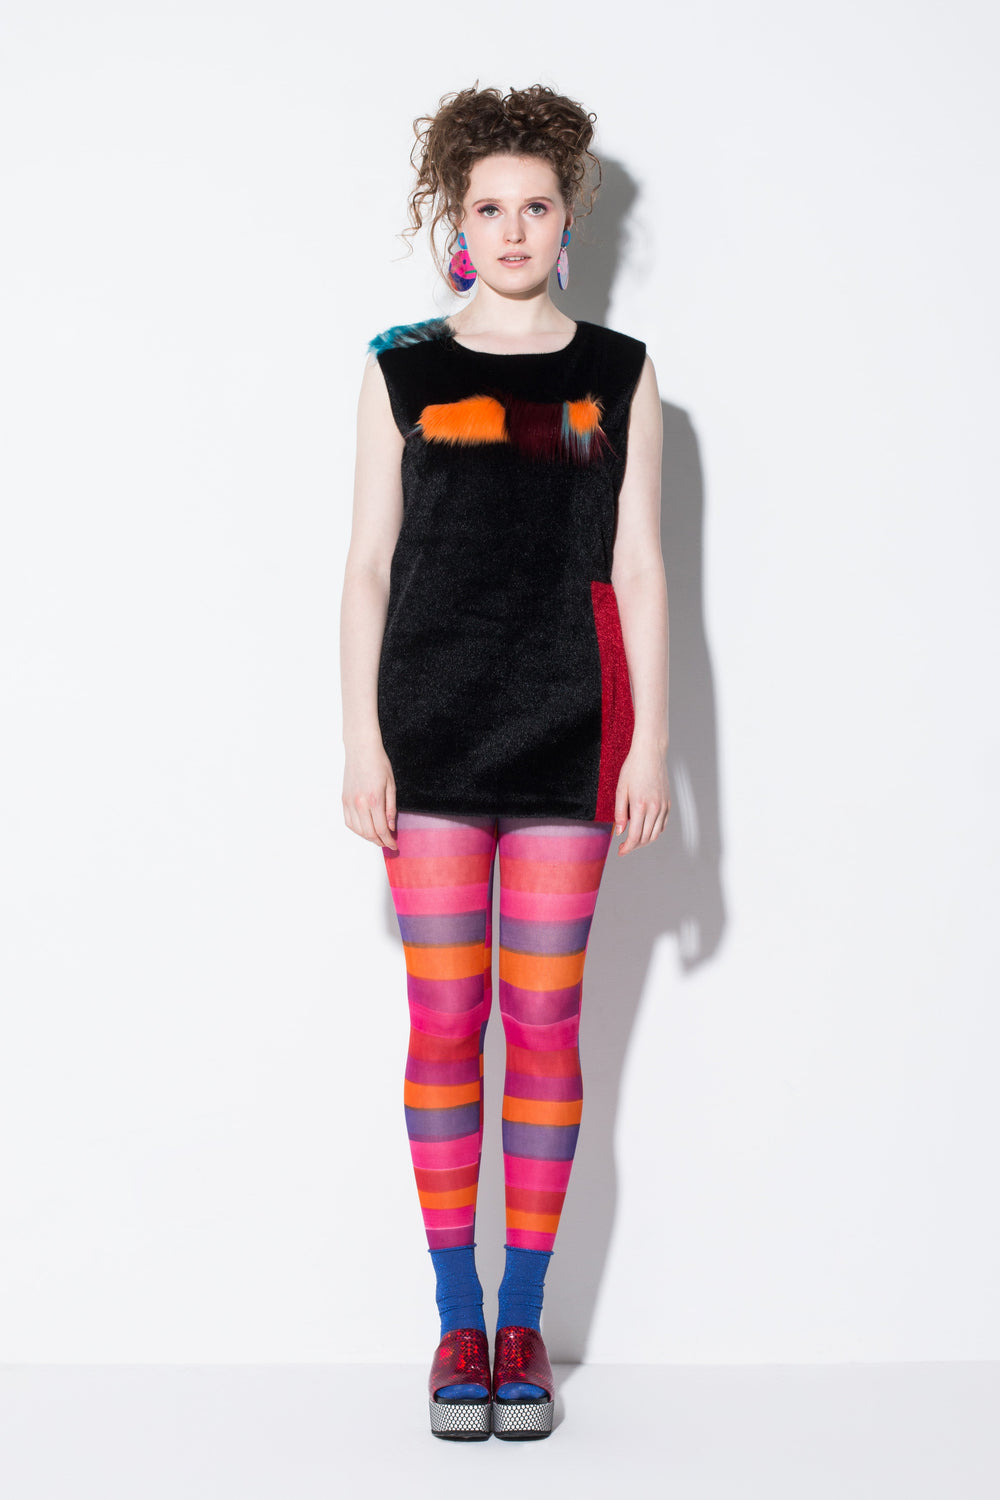 day meets night|a key piece faux fur mid-length vest in black orange and blue colour-way from jin & yin front view